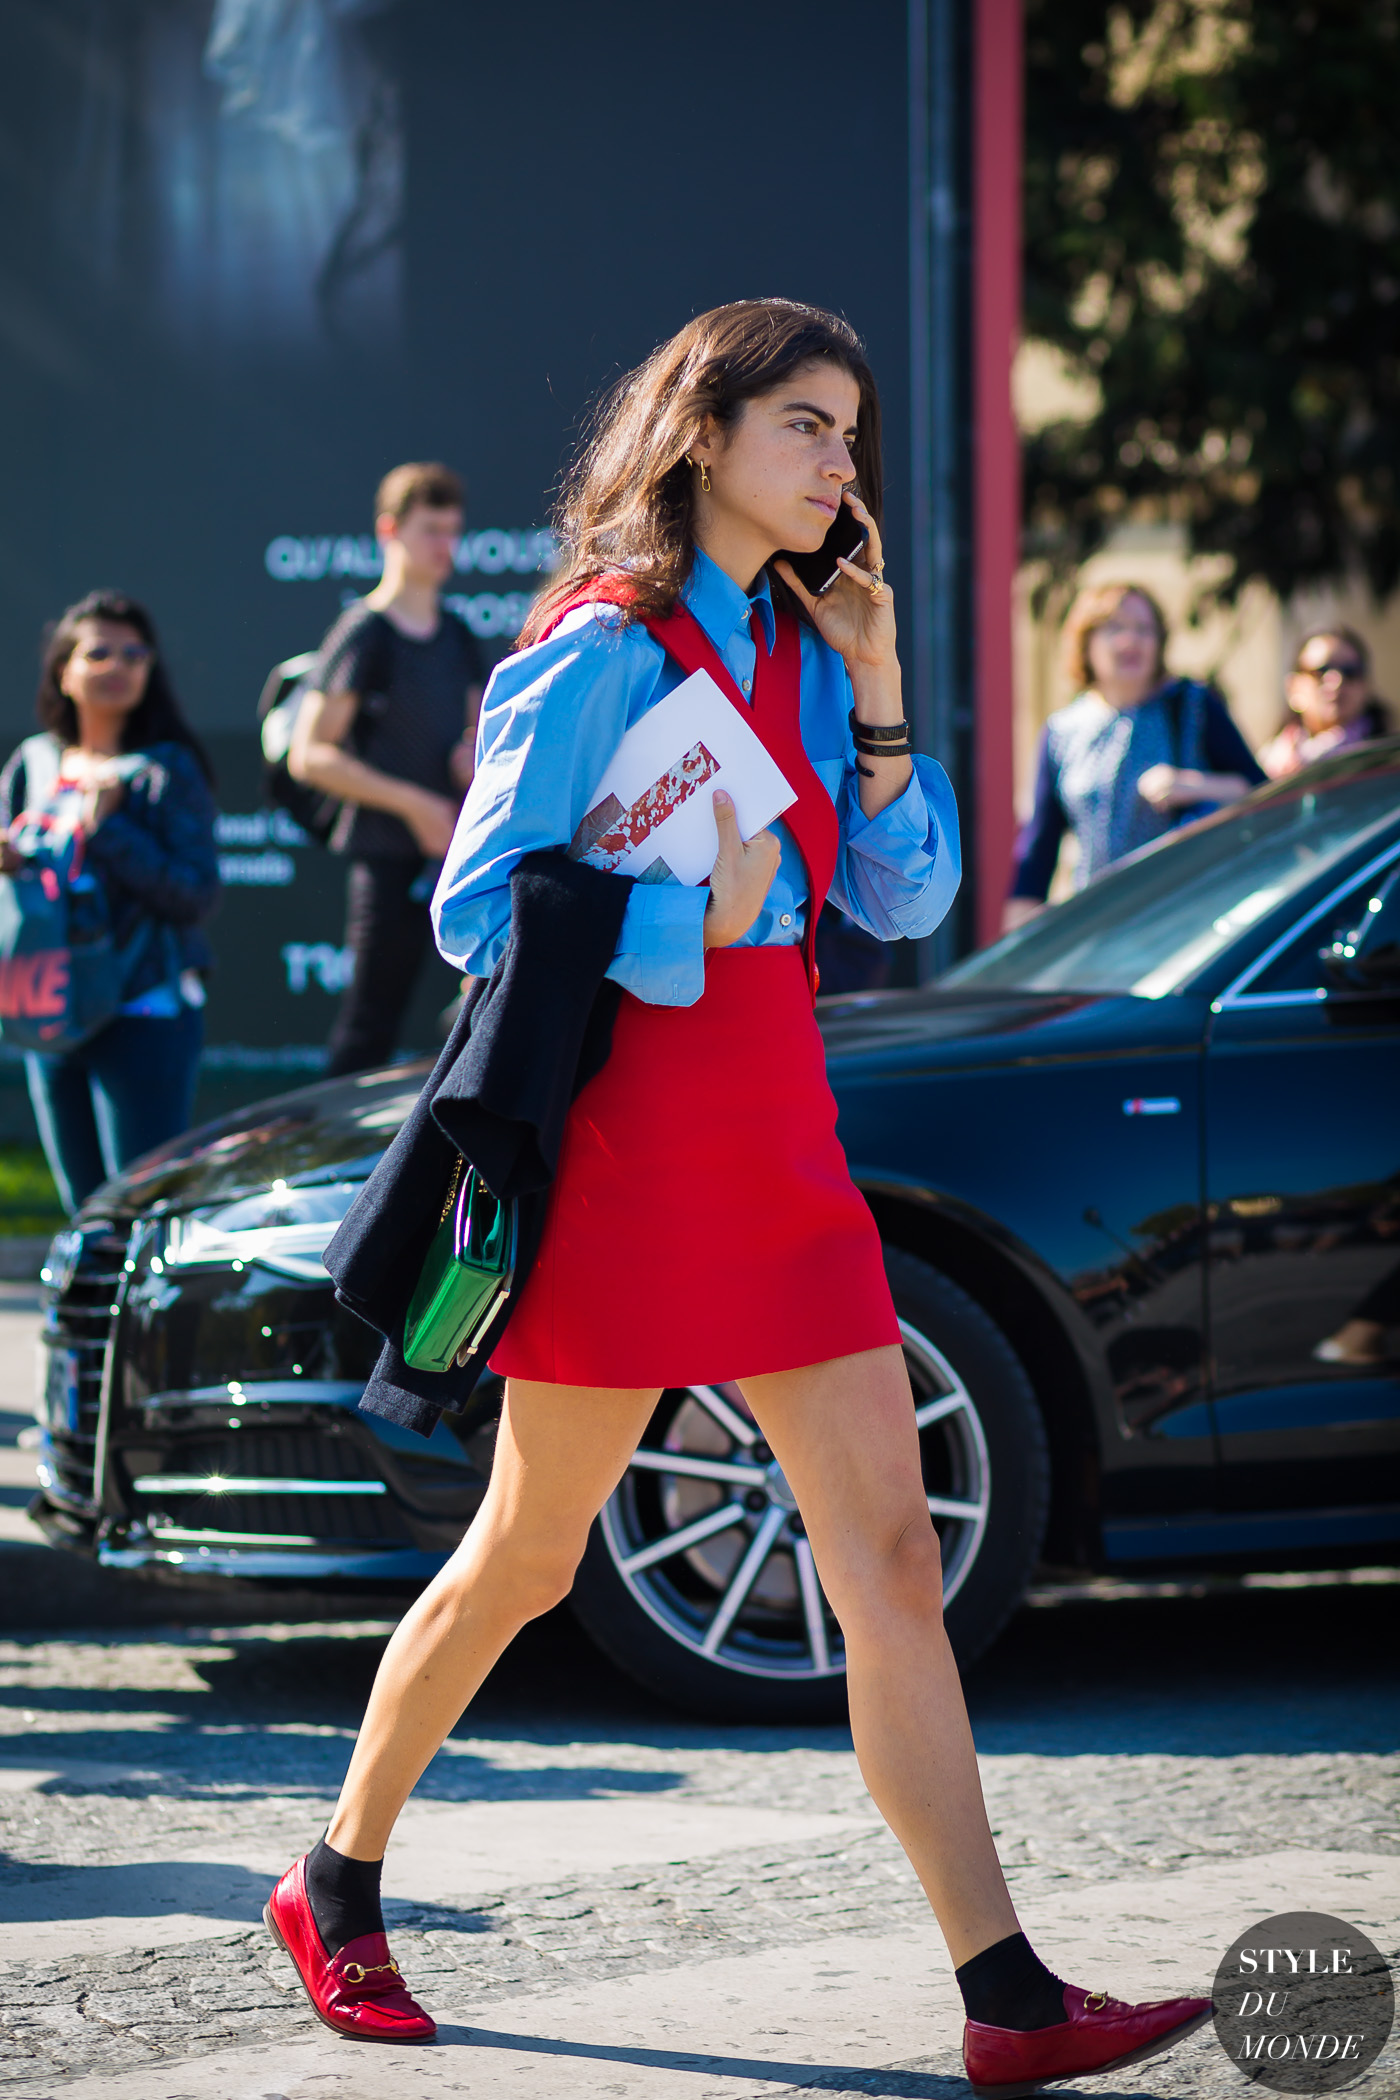 Leandra Medine Street Style Street Fashion Streetsnaps by STYLEDUMONDE Street Style Fashion Photography